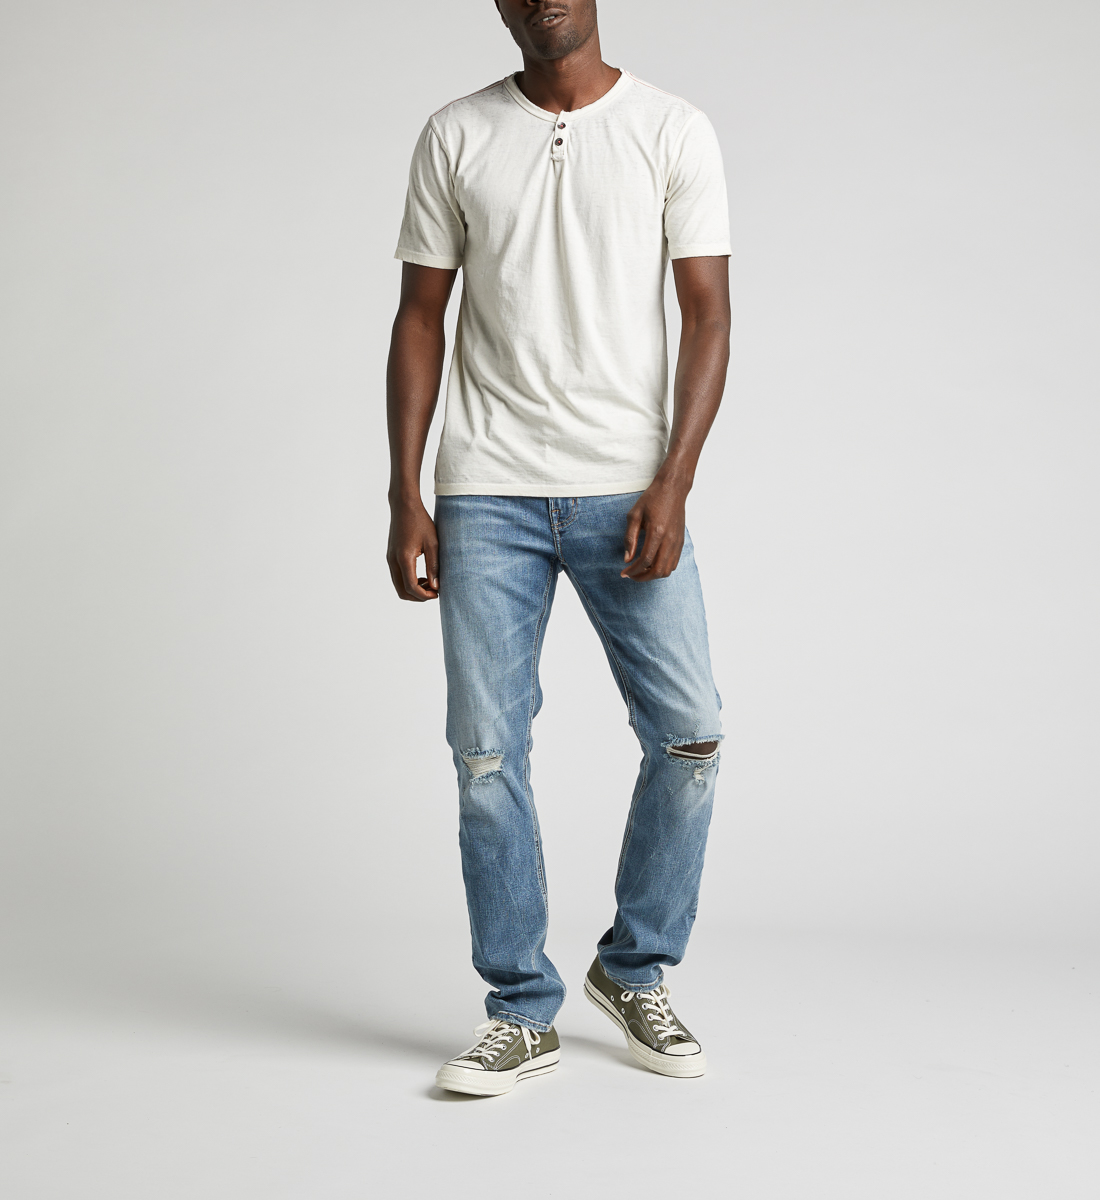 Kaleo Henley Tee,Warm White Back